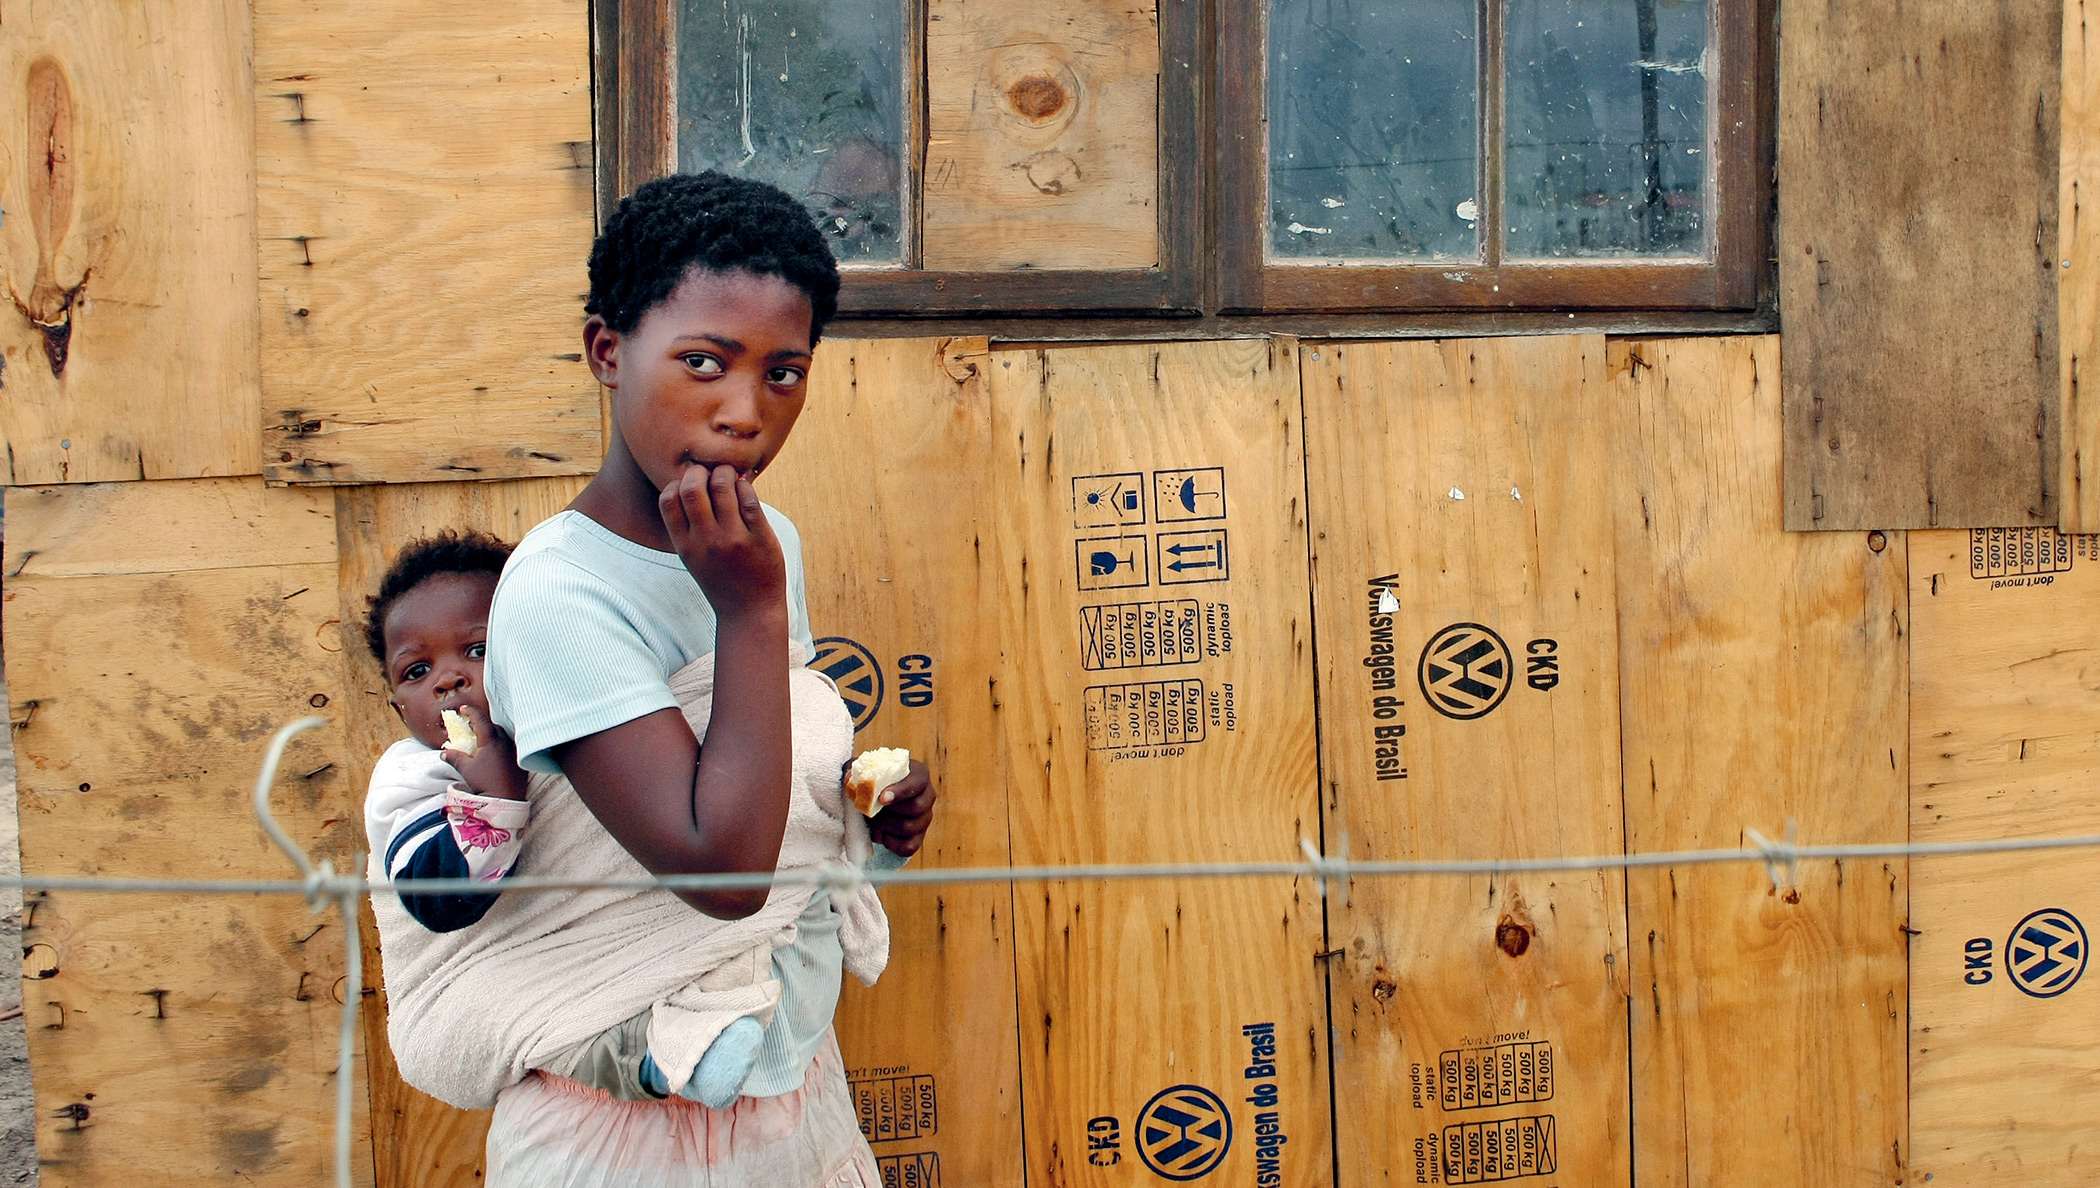 Wary looks: Ntombekhaya Sobuza and little sister Asanele outside their shack constructed from packaging materials from a Volkswagen plant, on the outskirts of Port Elizabeth, South Africa.